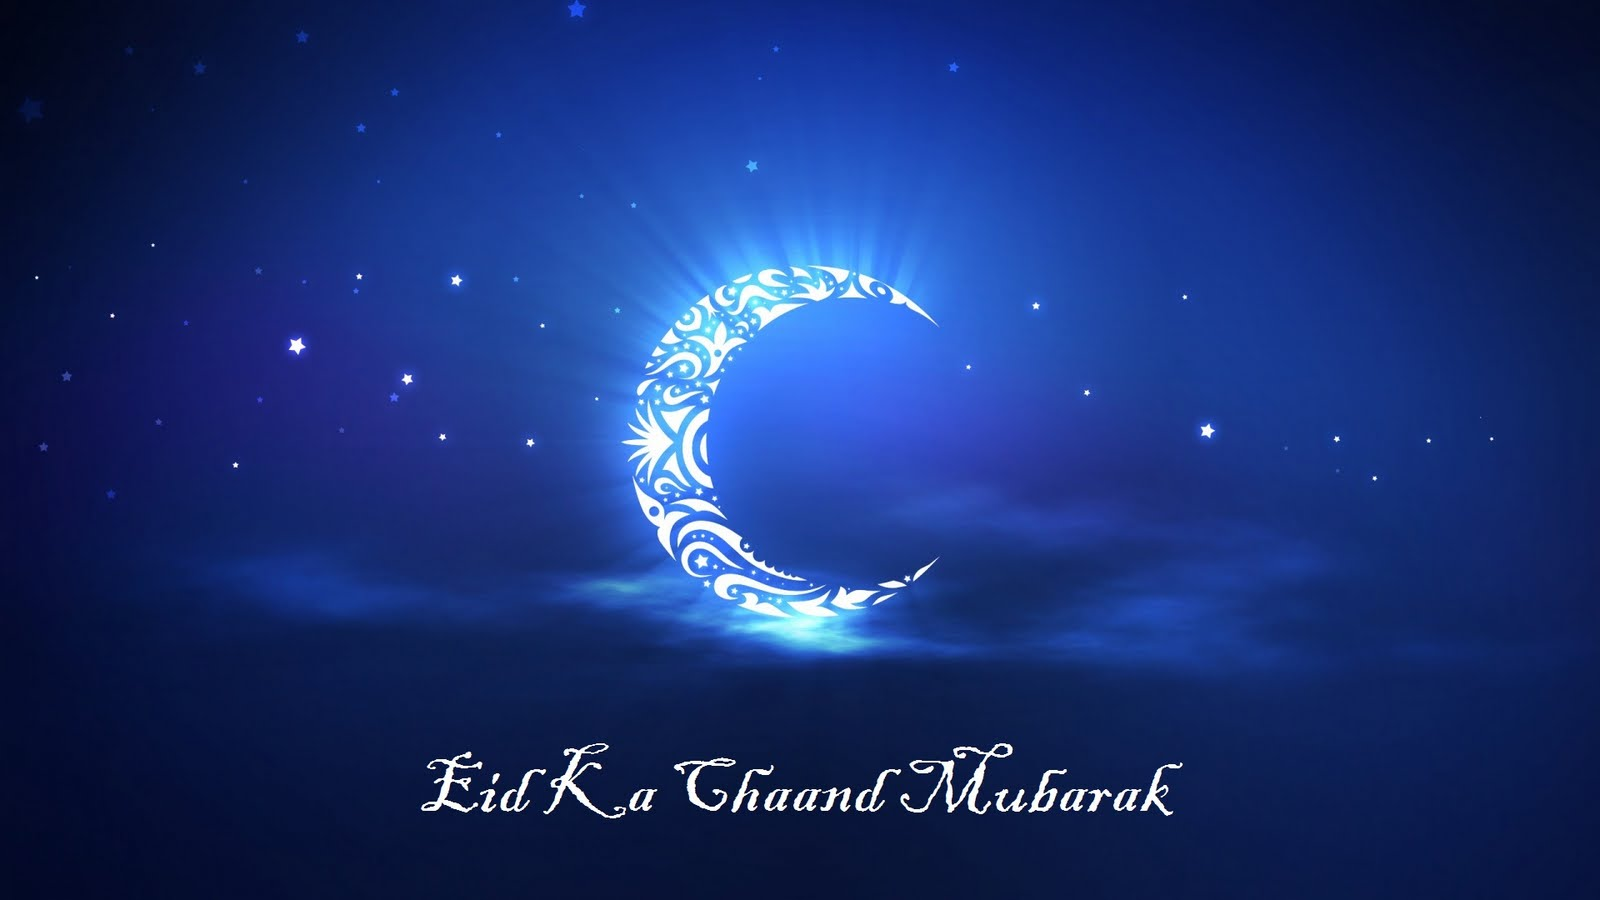 Eid-ka-chaand-Mubarak-images-photos-wallpapers-pictures